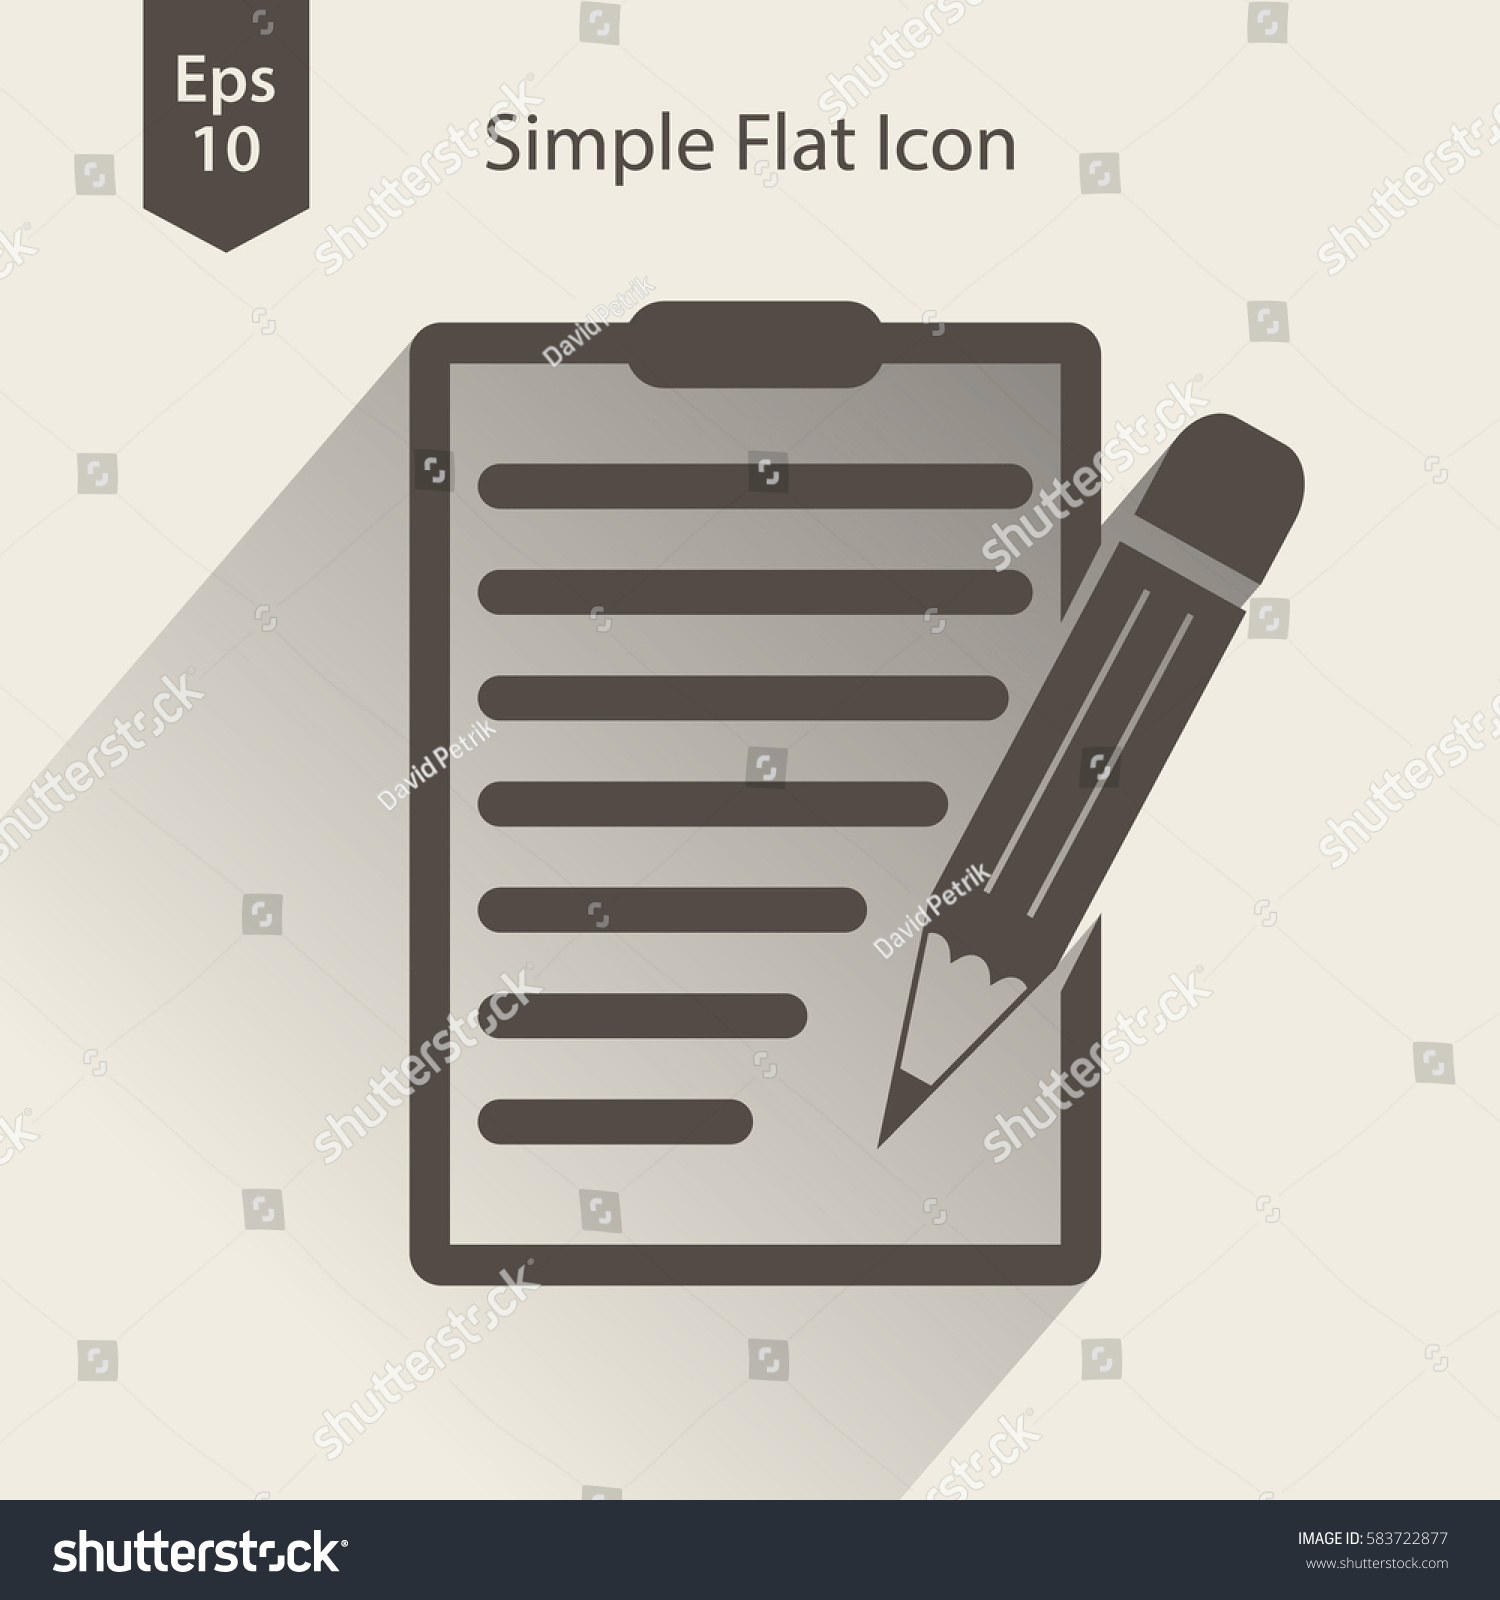 Notepad symbol simple flat icon paper stock vector 583722877 notepad symbol simple flat icon of paper and pen notebook with some text biocorpaavc Choice Image